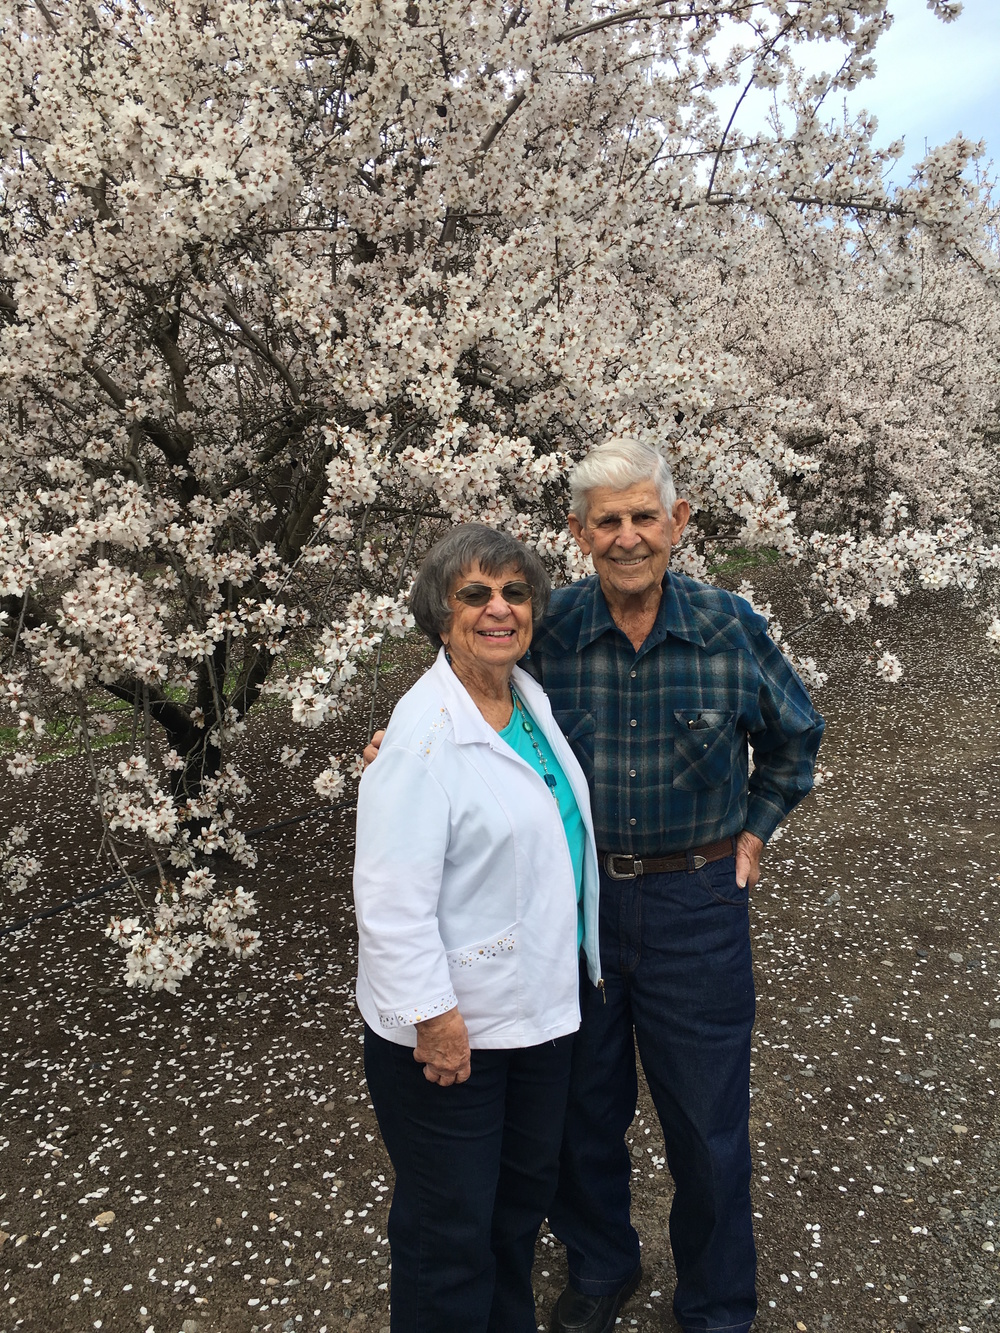 Norman and Freda Lucas are the founders of Lucas Dairy, the base of all of our farming operations.  Their lifetime work will be honored in December as they have been elected to the Stanislaus County Ag Hall of Fame.  We are very proud of all they have achieved and hope to continue their devotion to the agriculture community.